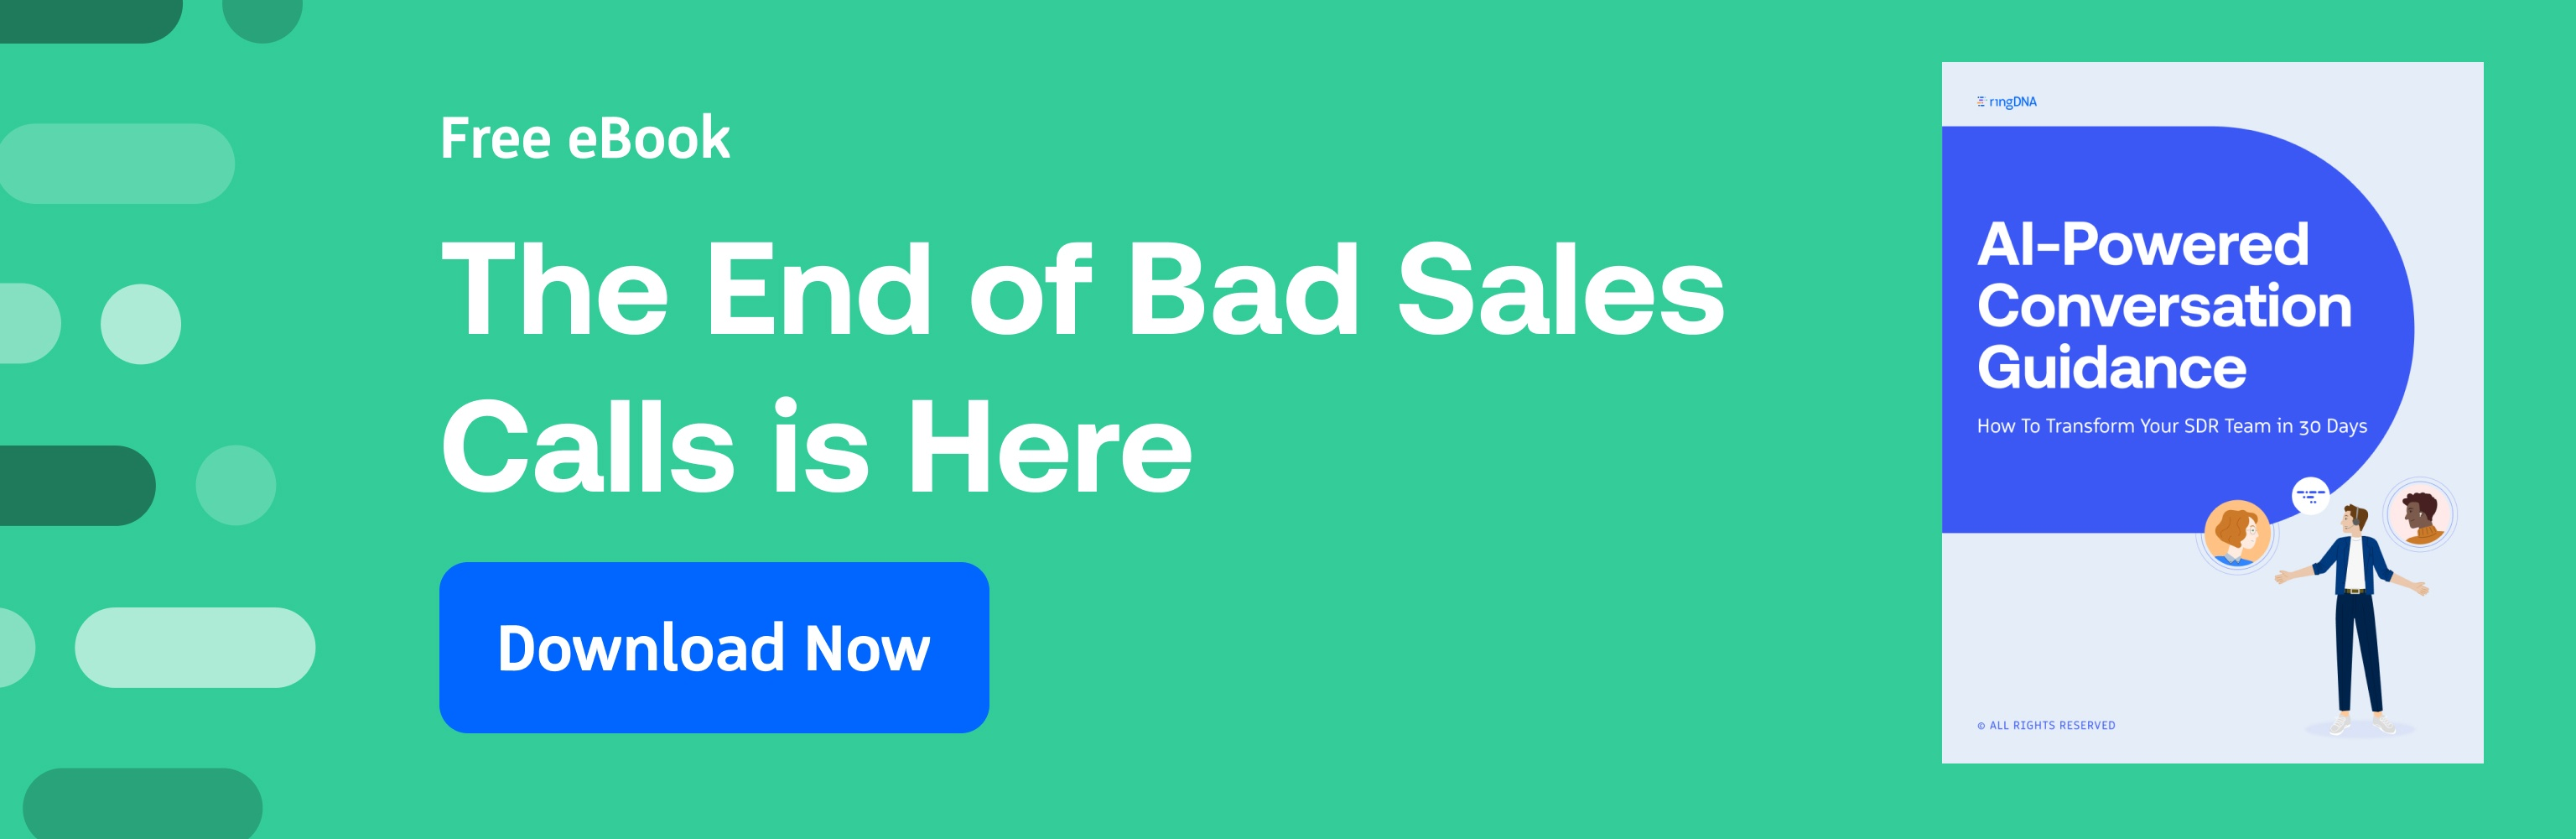 The End of Bad Sales Calls is Here ebook download